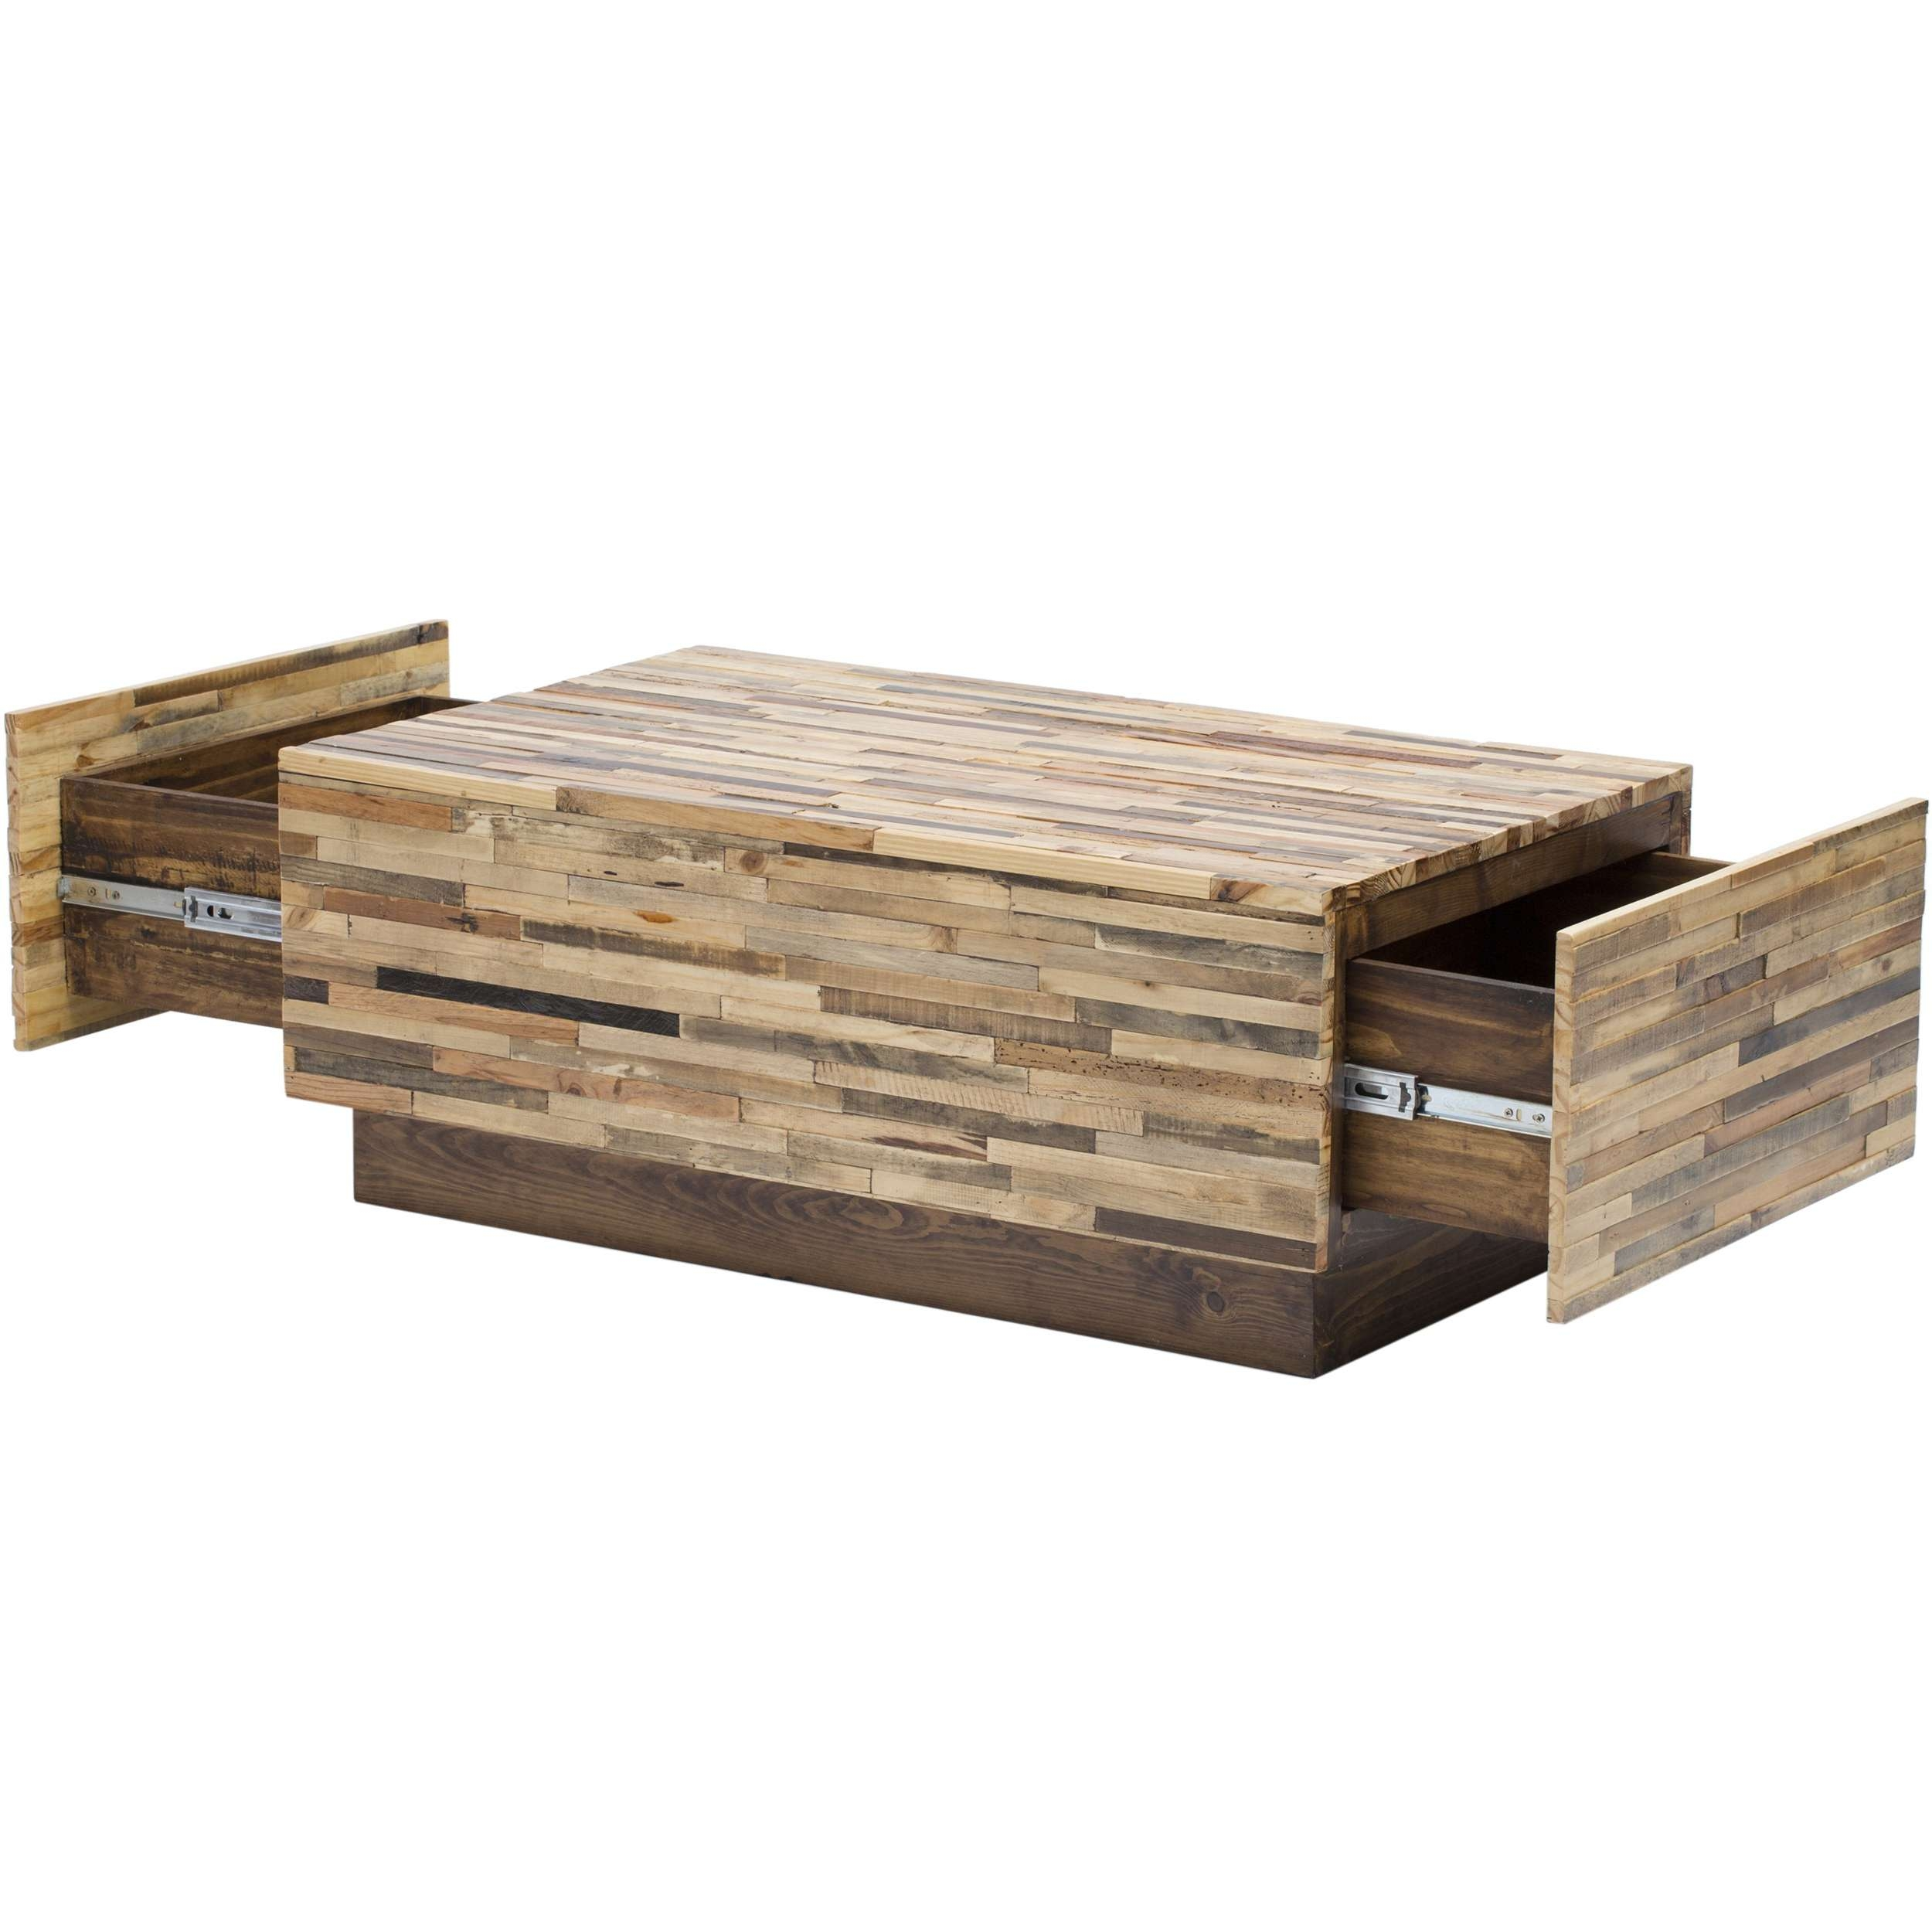 Best And Newest Square Storage Coffee Table Intended For Picturesque Double Drawer Storage Reclaimed Wood Coffee Table With (View 3 of 20)